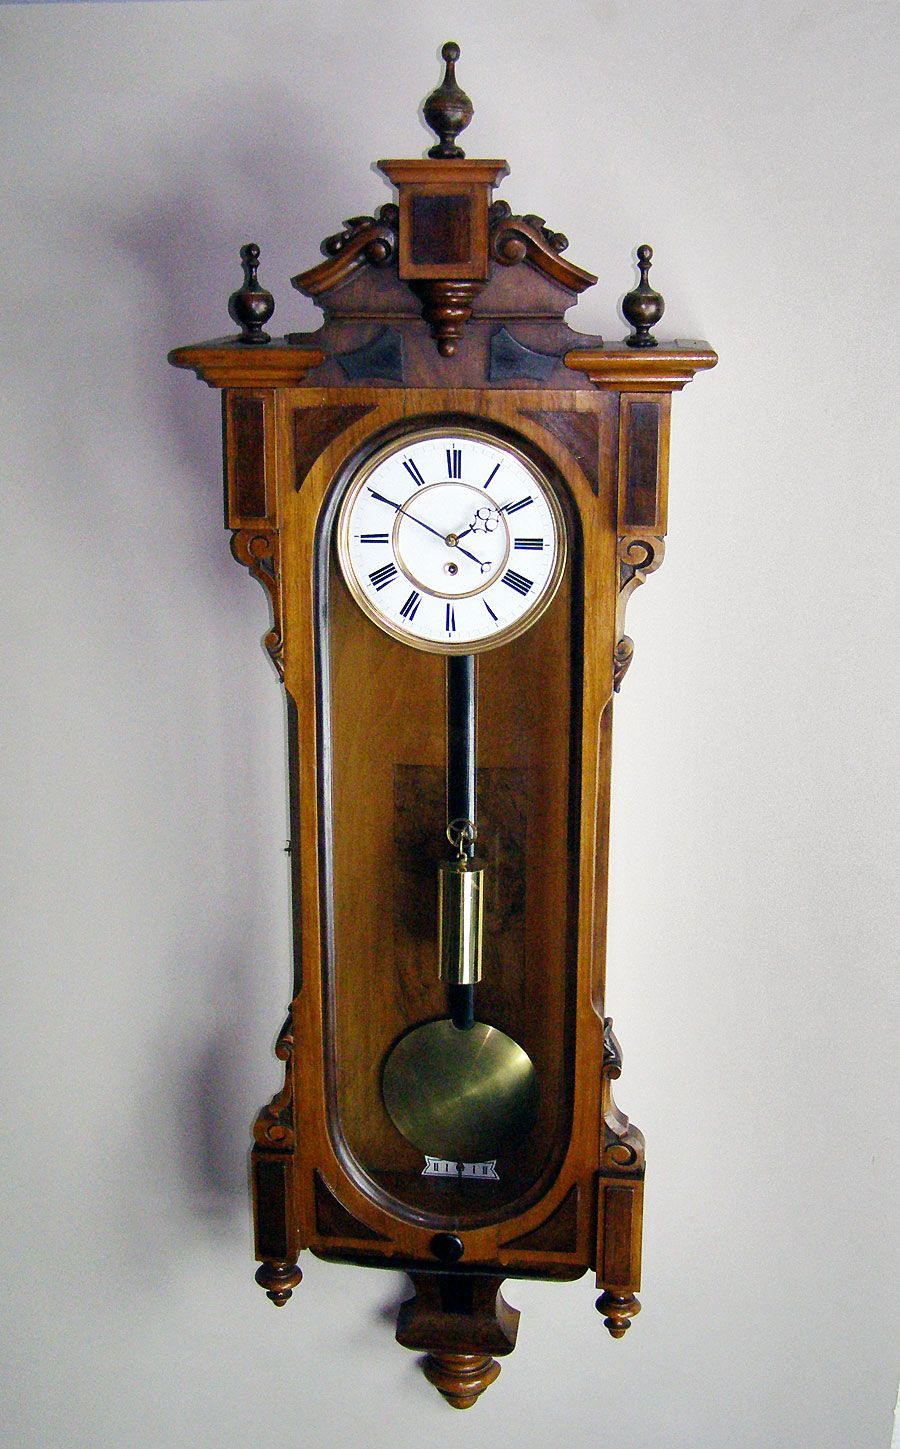 Types of antique wall clocks google search antique wall clocks types of antique wall clocks google search amipublicfo Choice Image